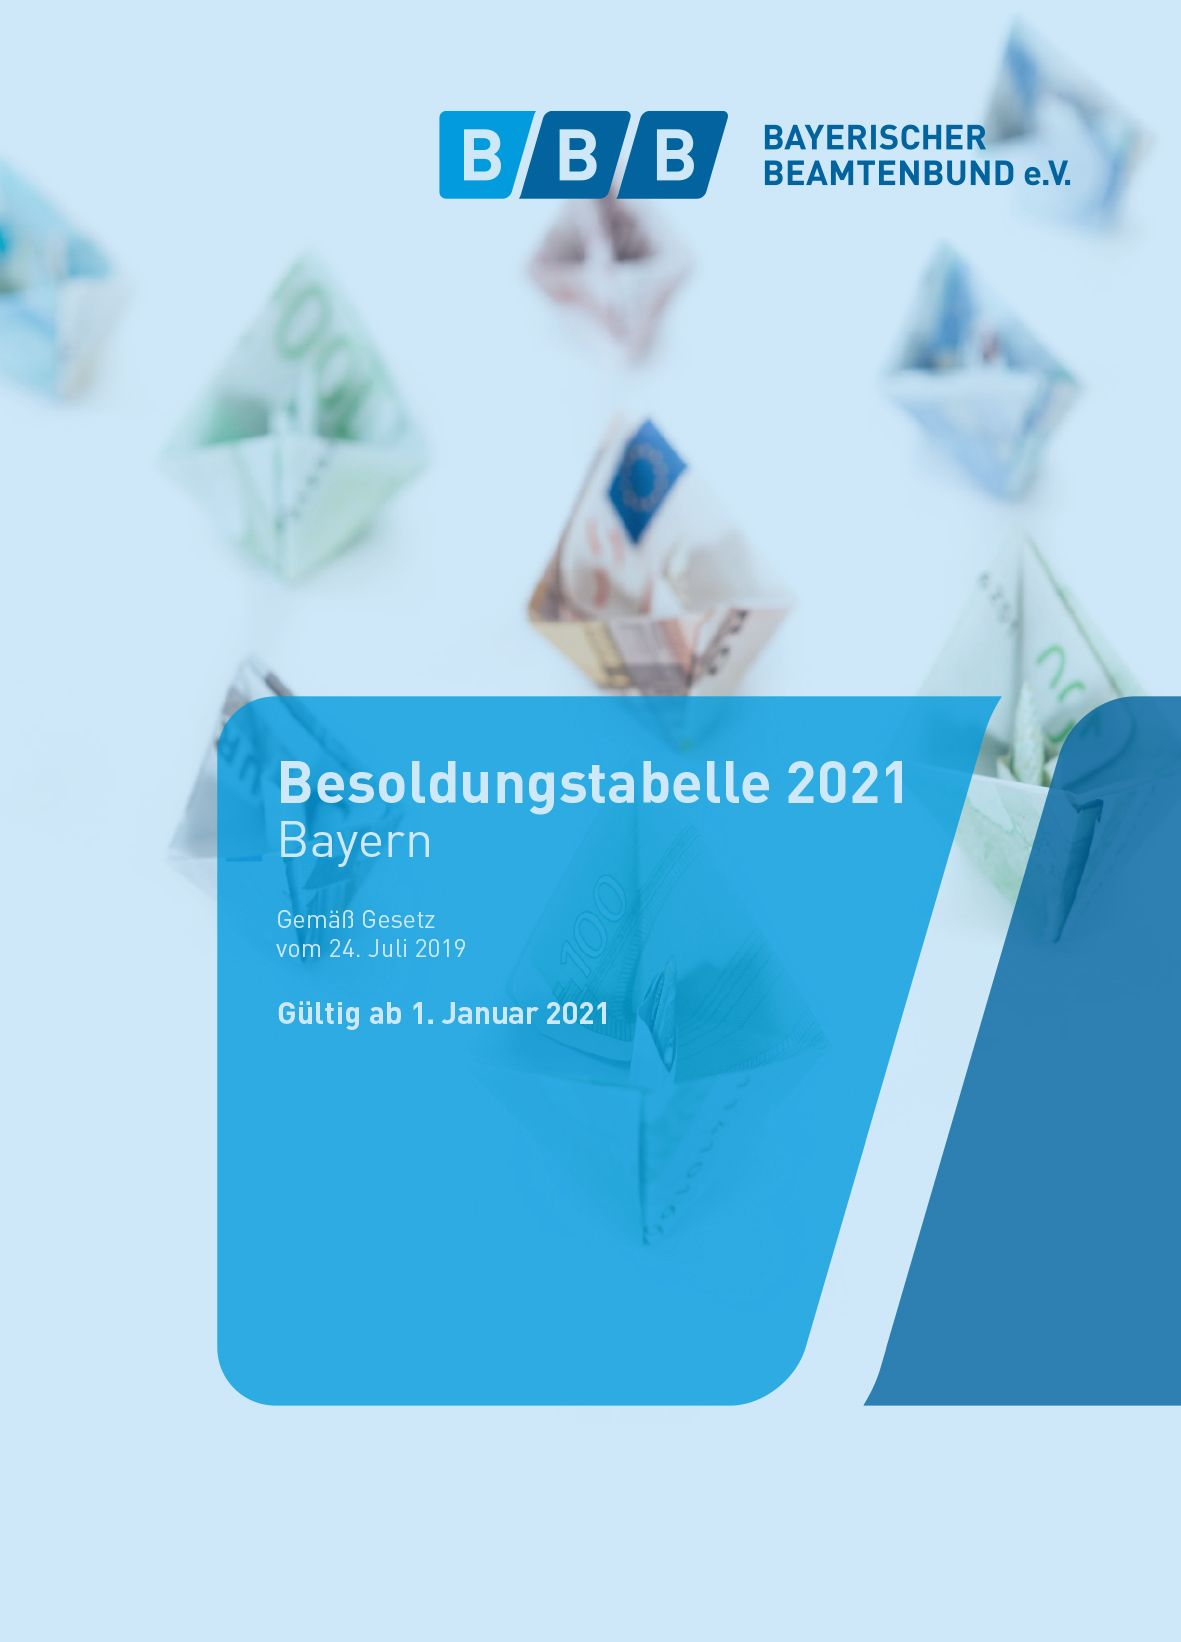 201013_BBB-Besoldungstabelle-2021_394x139_Cover_web_blau_Hover